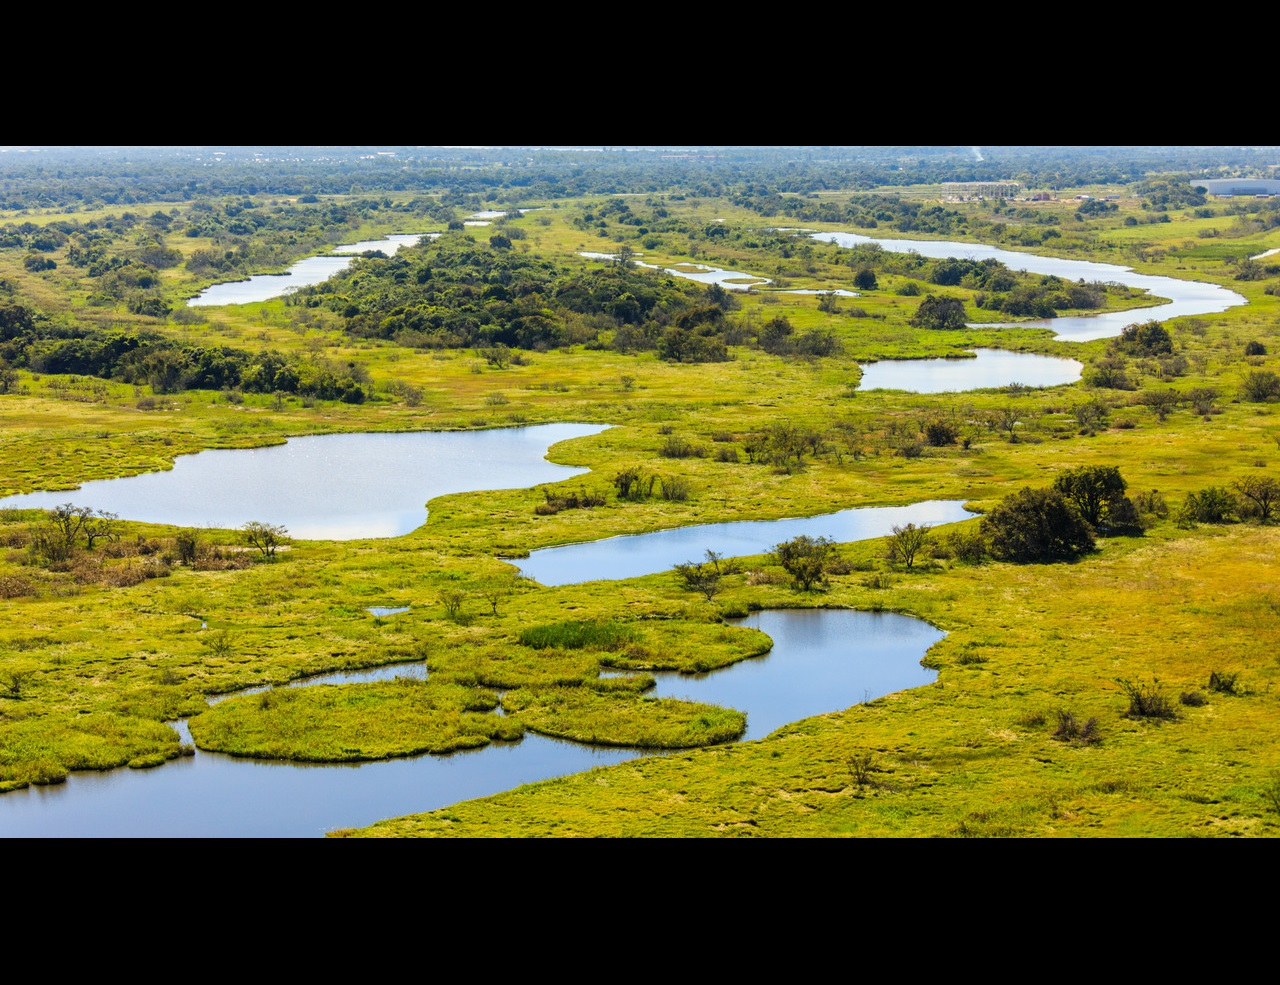 Veiw from helicopter of wetlands and ponds around the Paraguay River